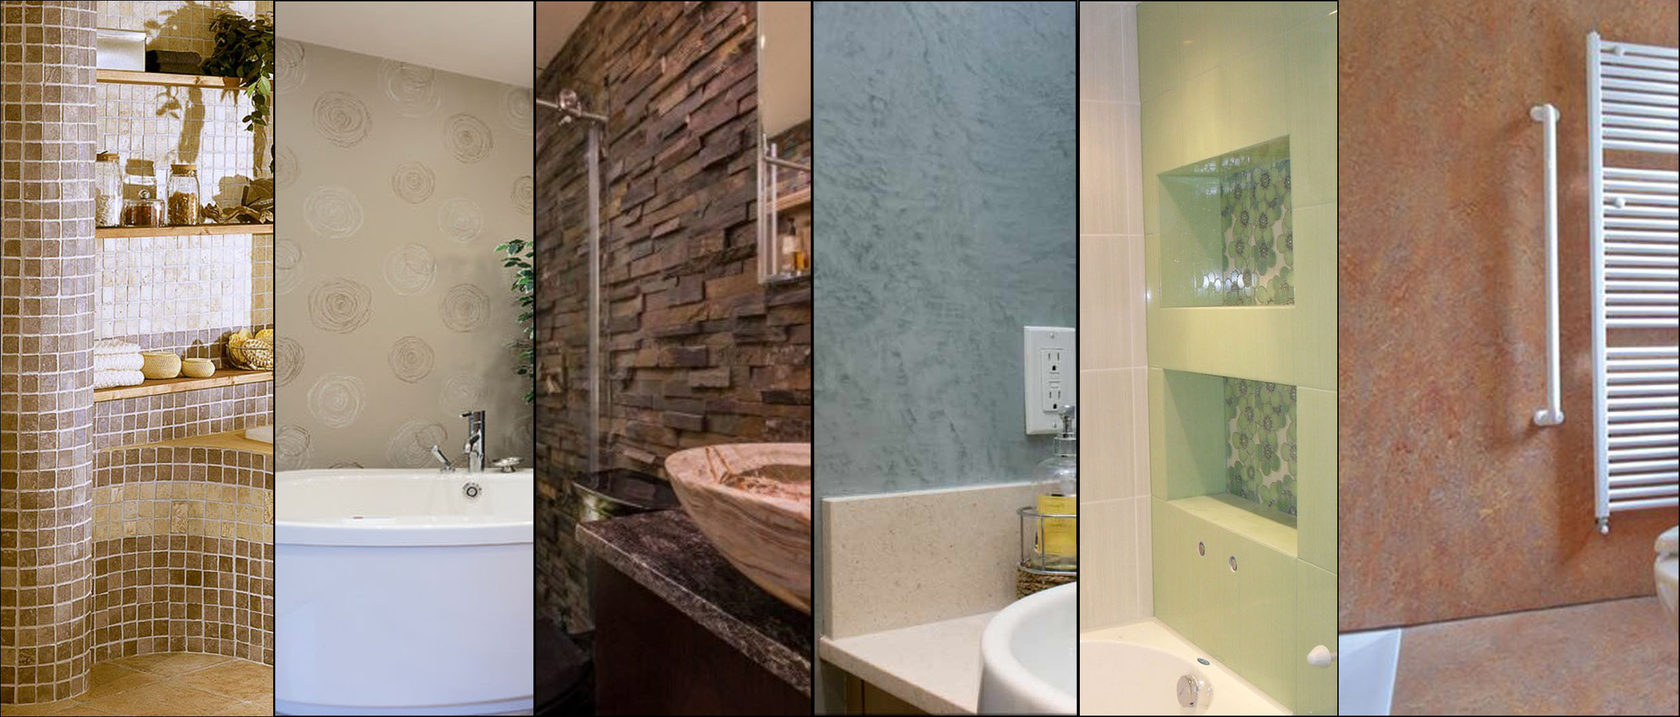 Top 7 popular materials wall finishing. Searching for a more suitable variant